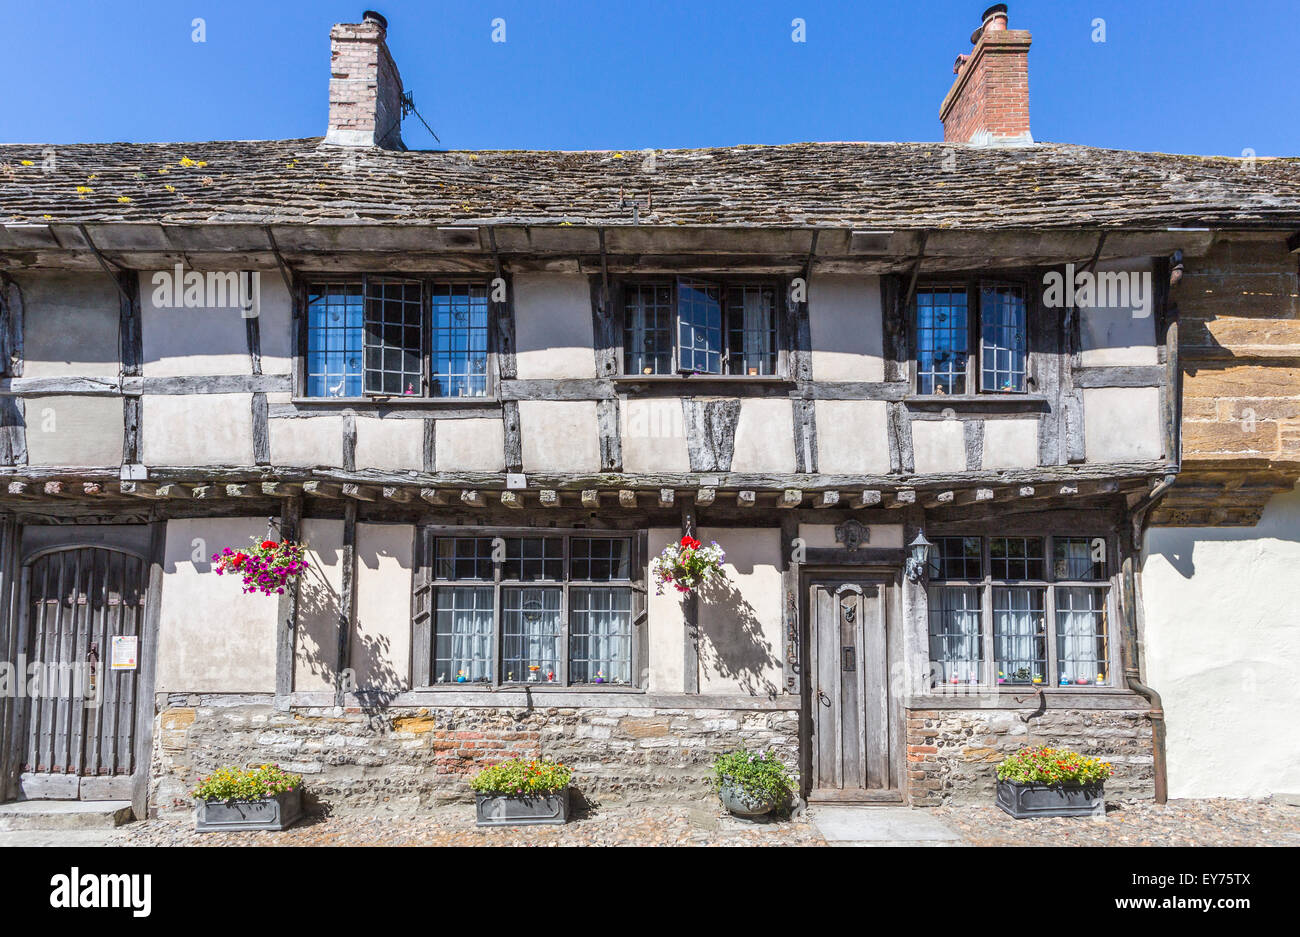 Old traditional timbered cottages with slate tiled roof in Cerne Abbas, a village in Dorset, south-west England, - Stock Image